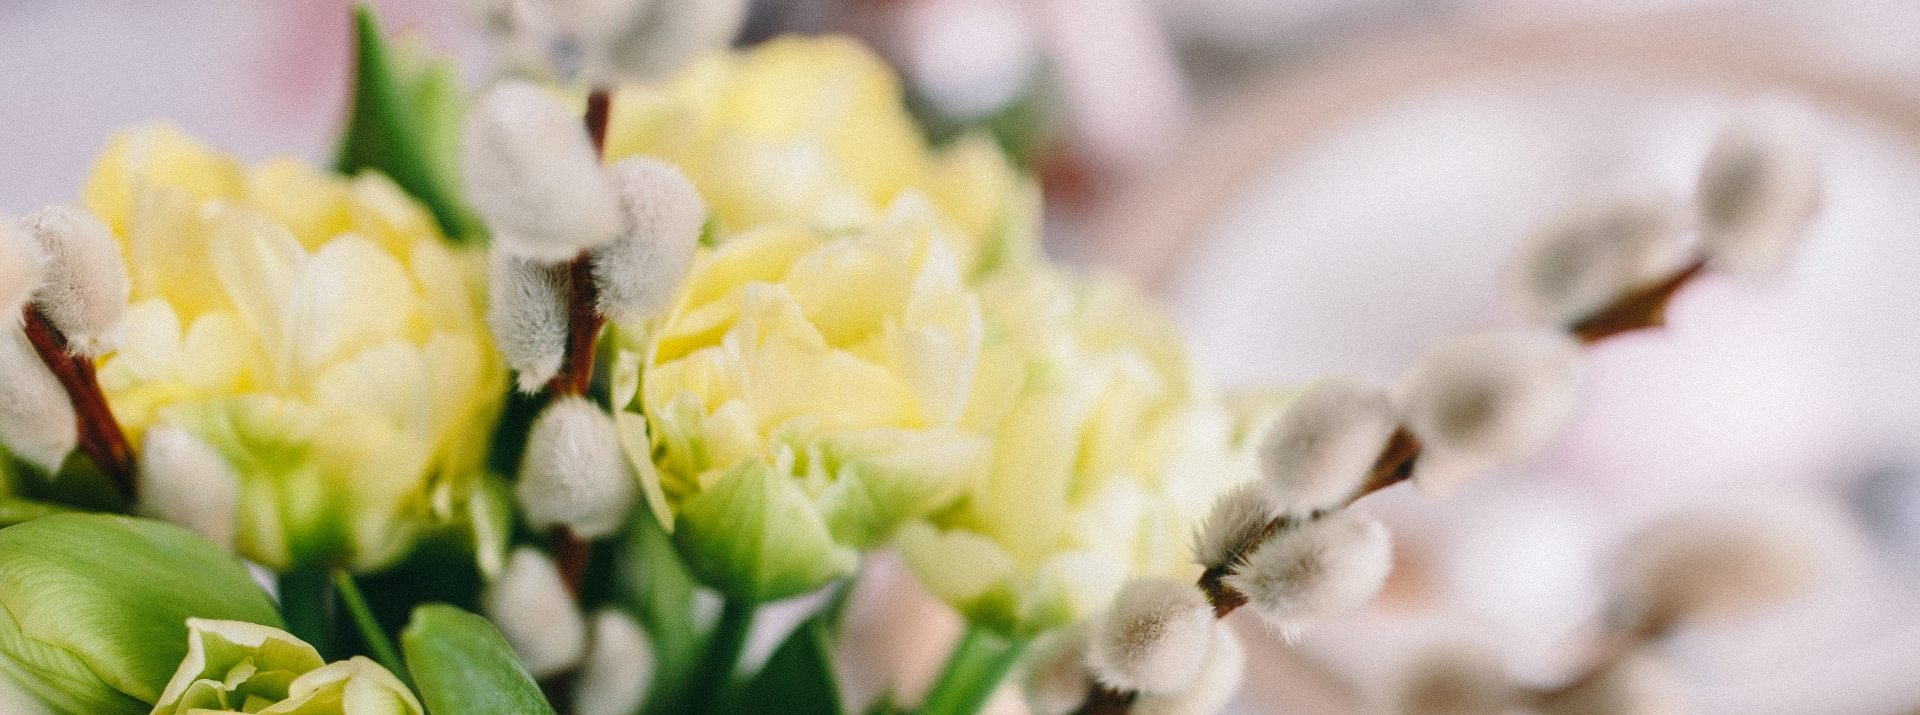 cropped-cropped-kaboompics.com_Spring-flowers-on-a-table.jpg